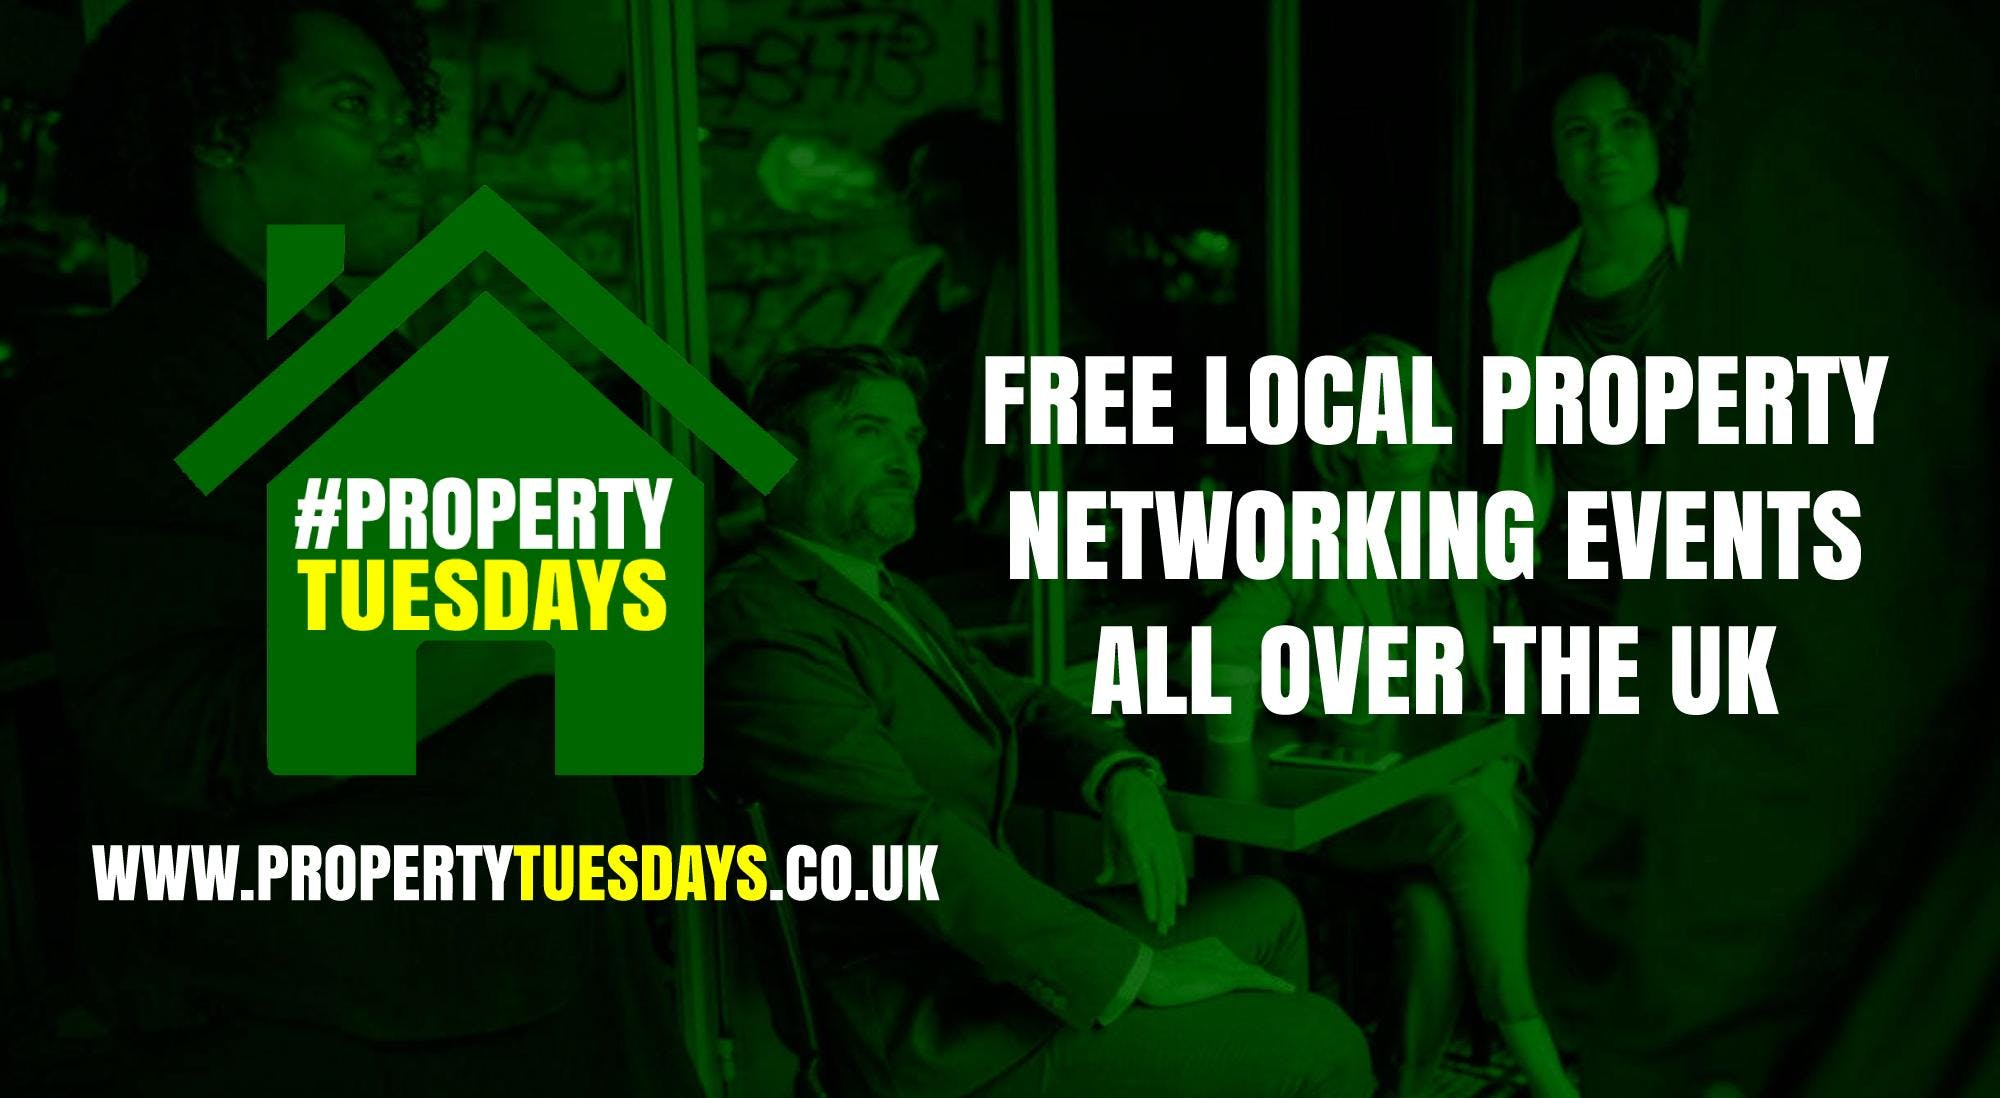 Property Tuesdays! Free property networking event in Cleveleys